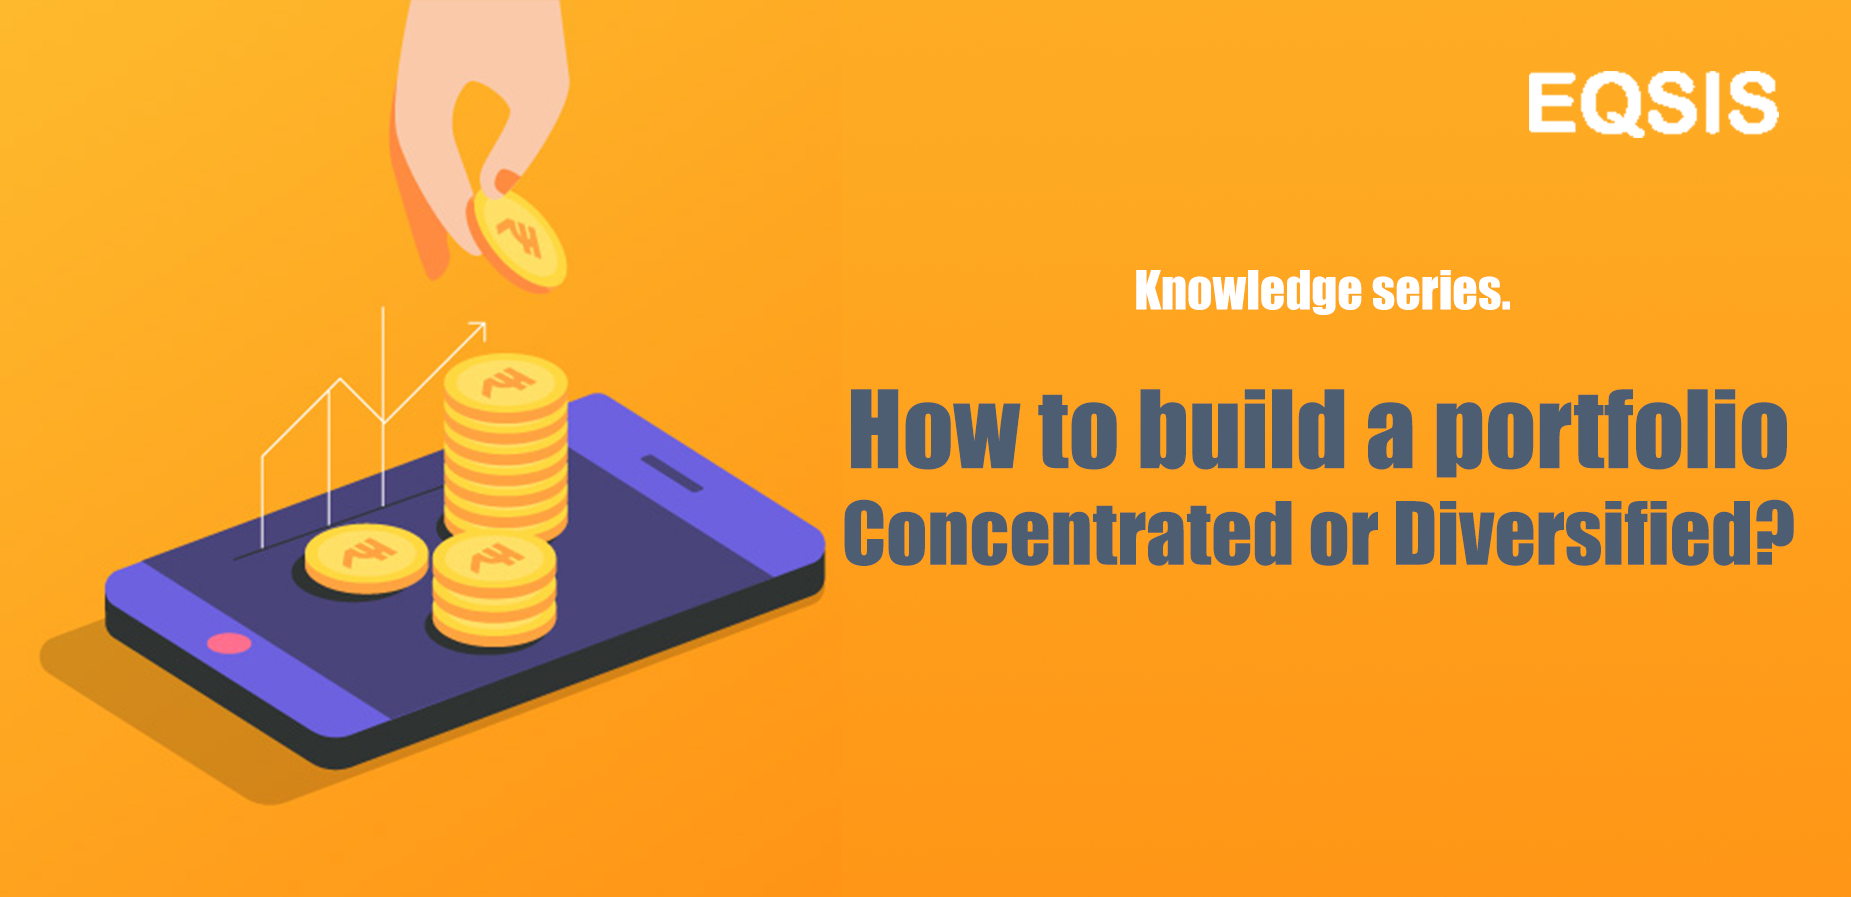 How To Build a Portfolio – Concentrated or Diversified?